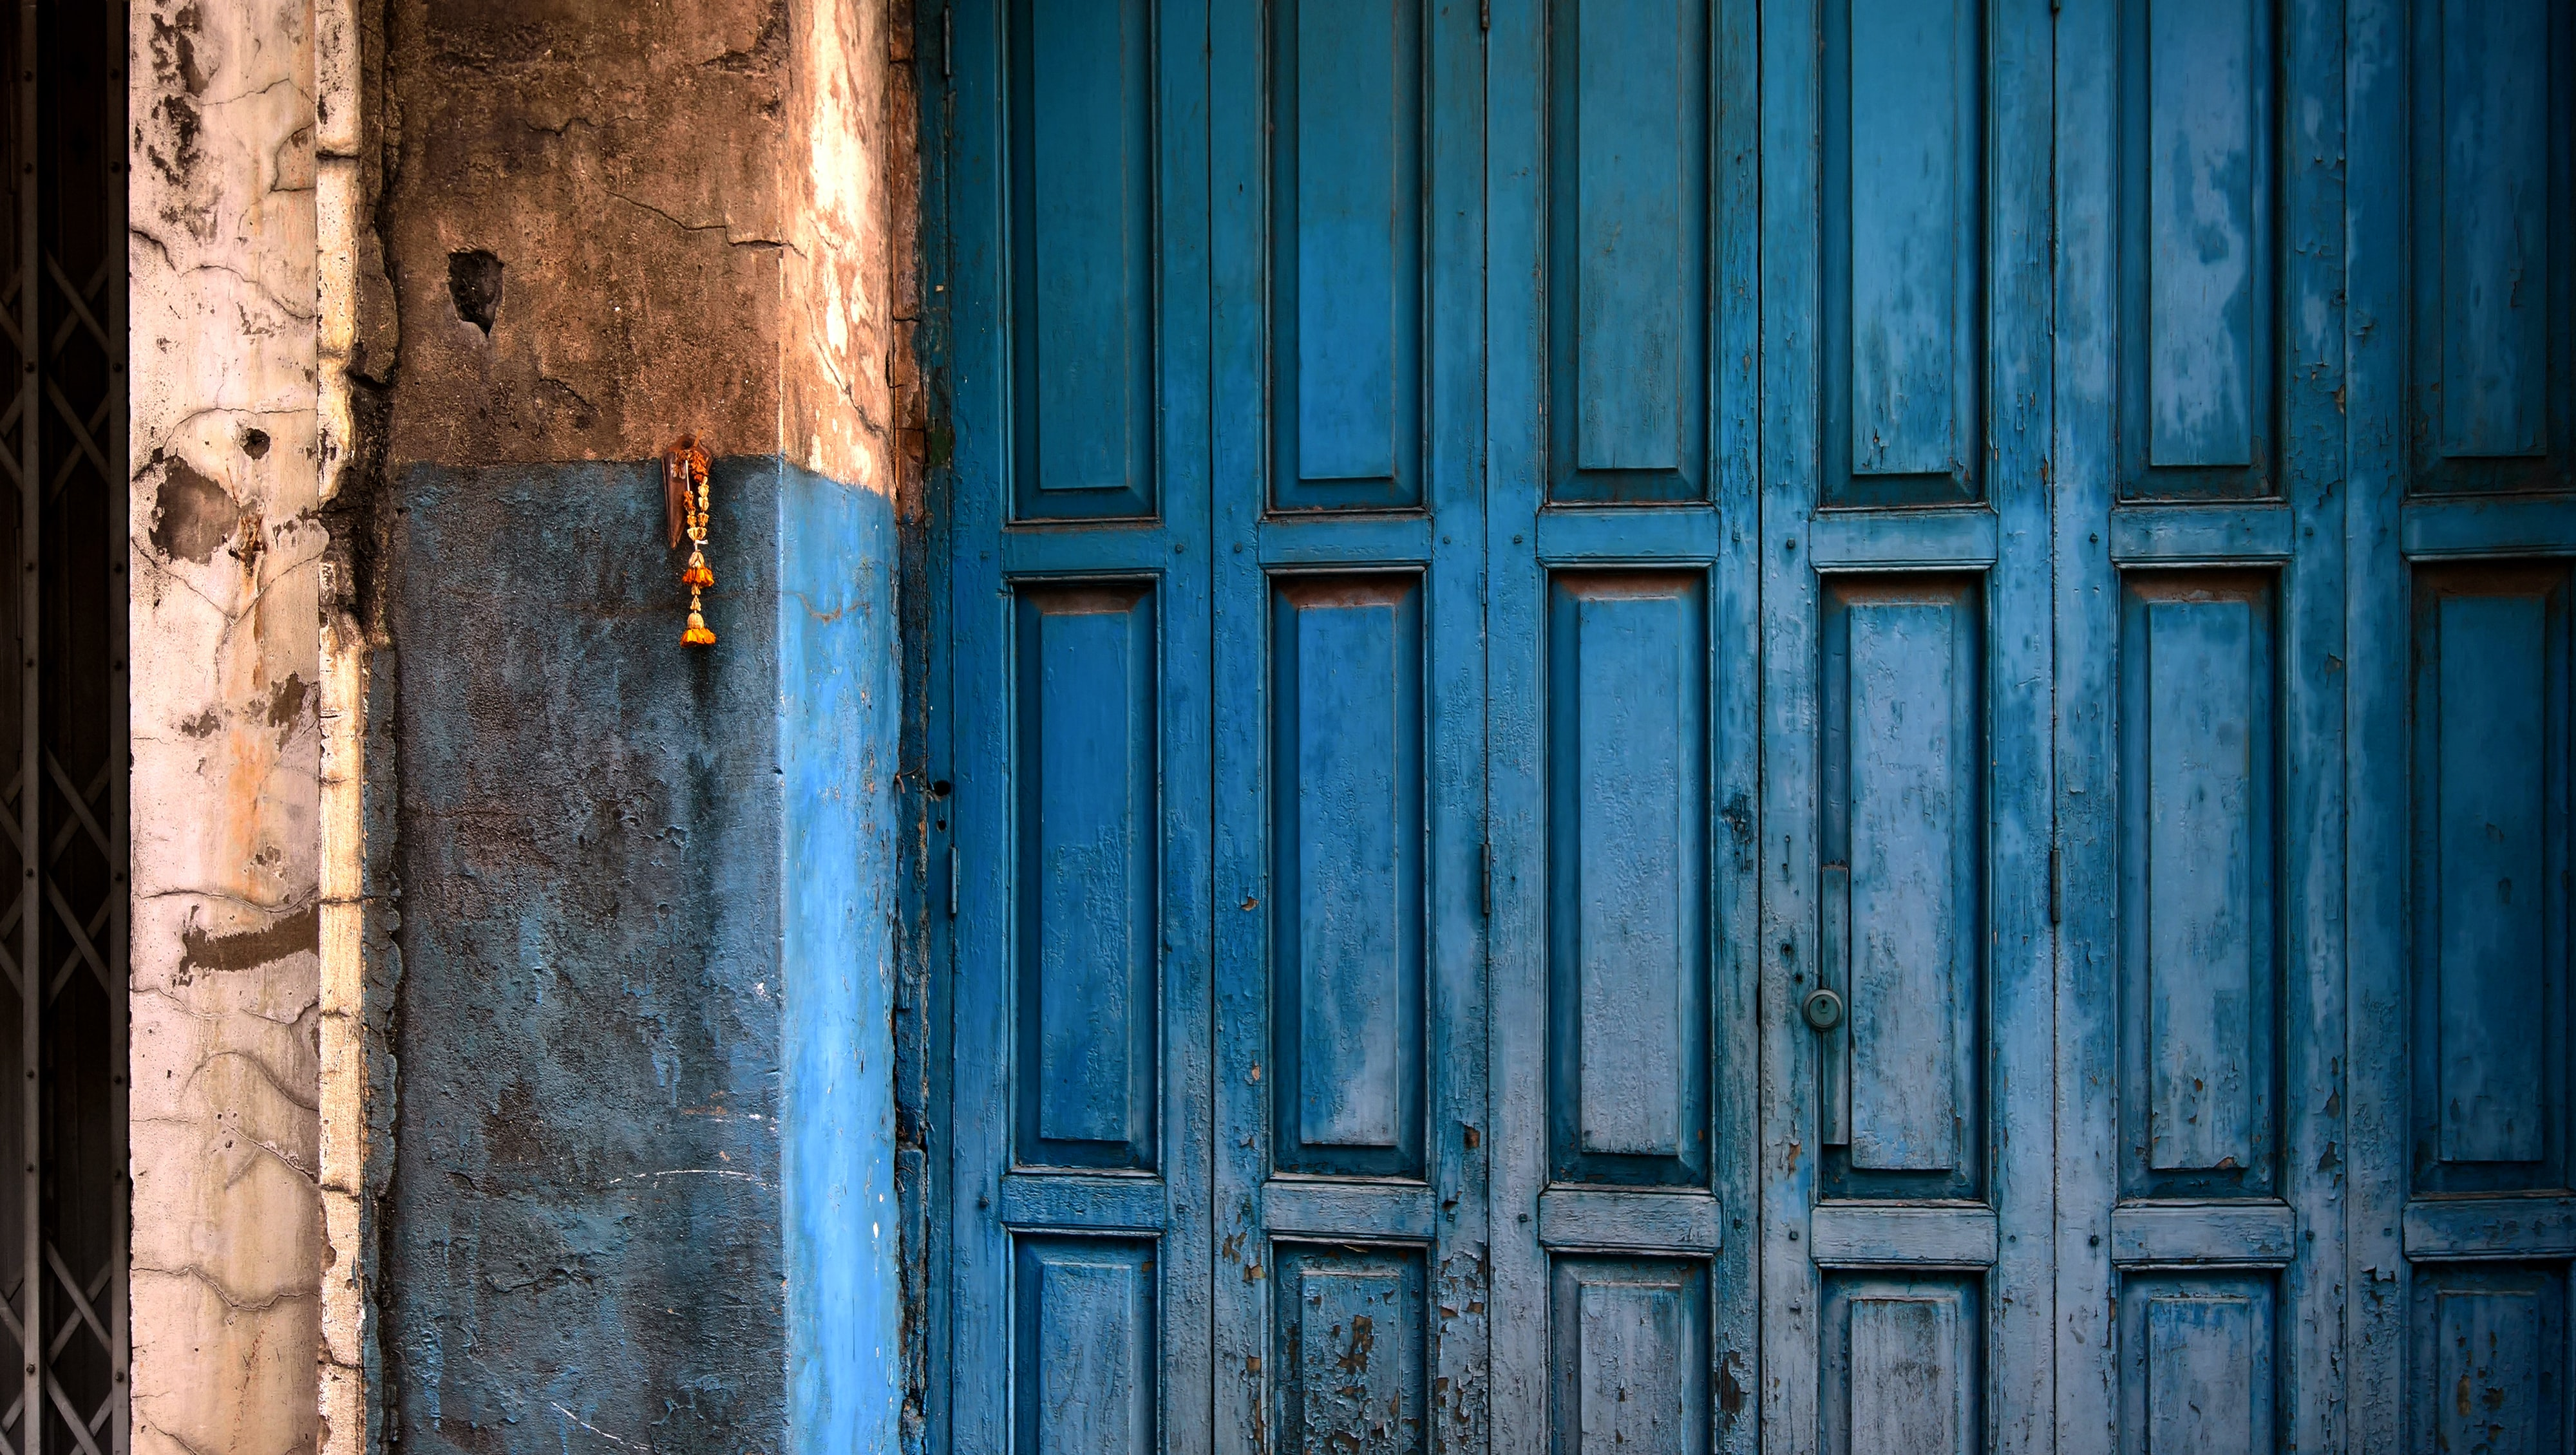 A blue painted door.